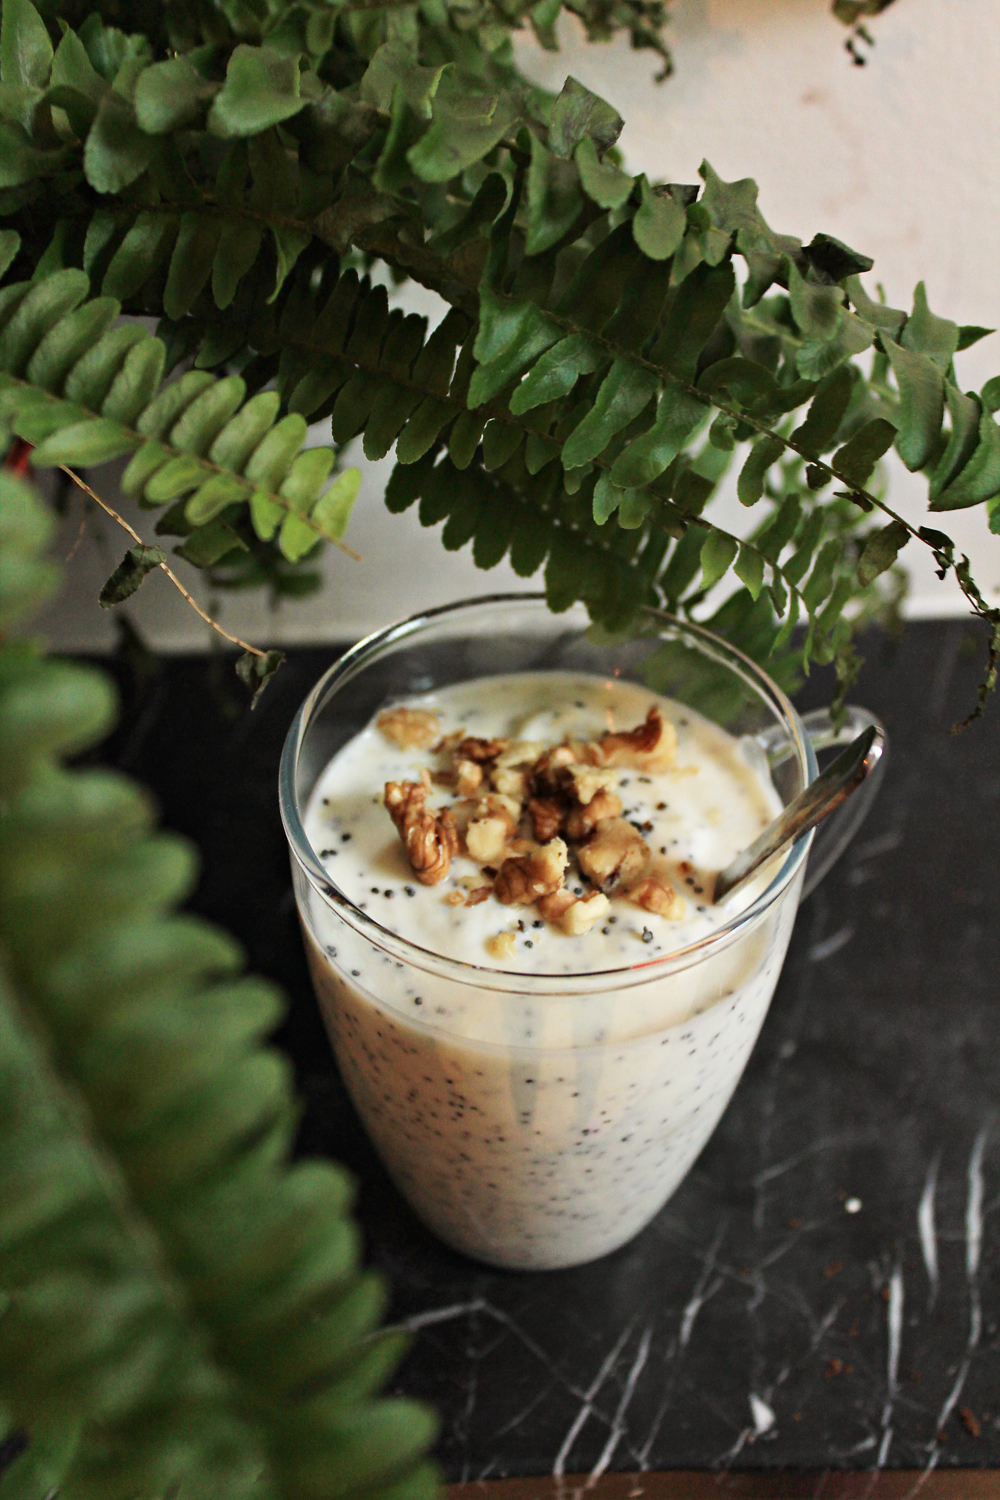 Try this: Yogurt with marzipan, poppy seeds & walnuts | in Whirl of Inspiration